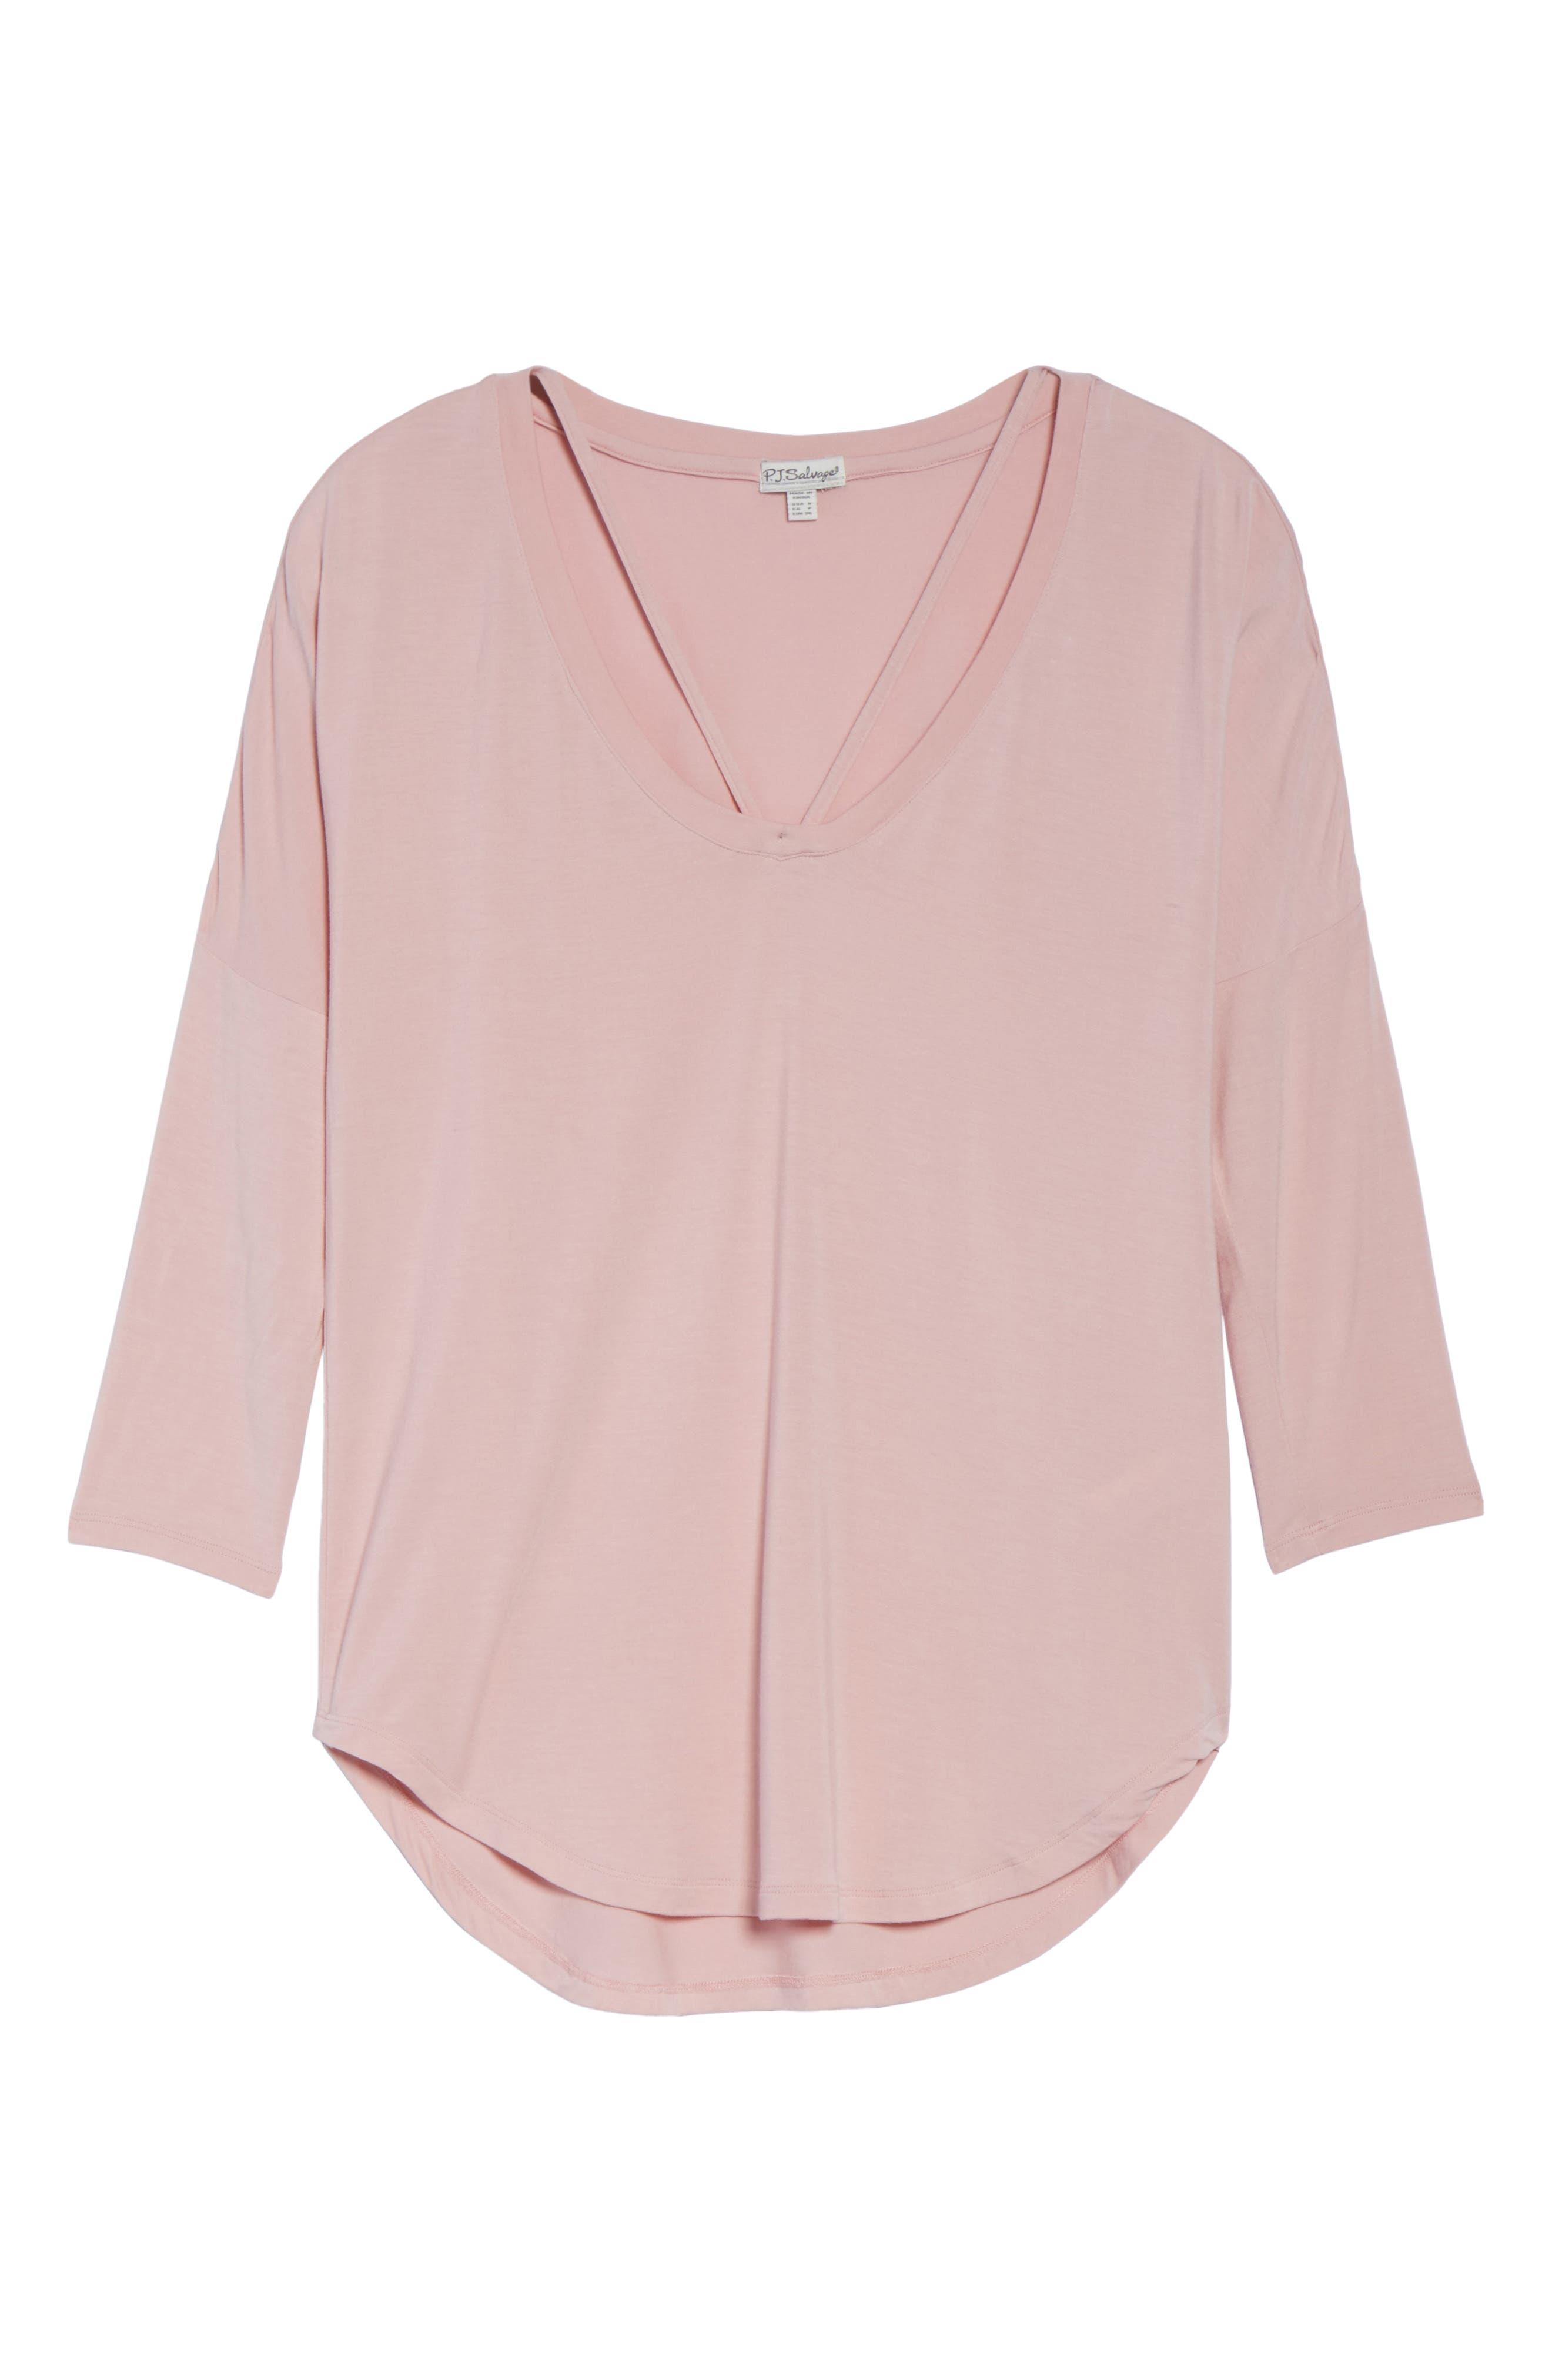 Long Sleeve Top,                             Alternate thumbnail 6, color,                             650